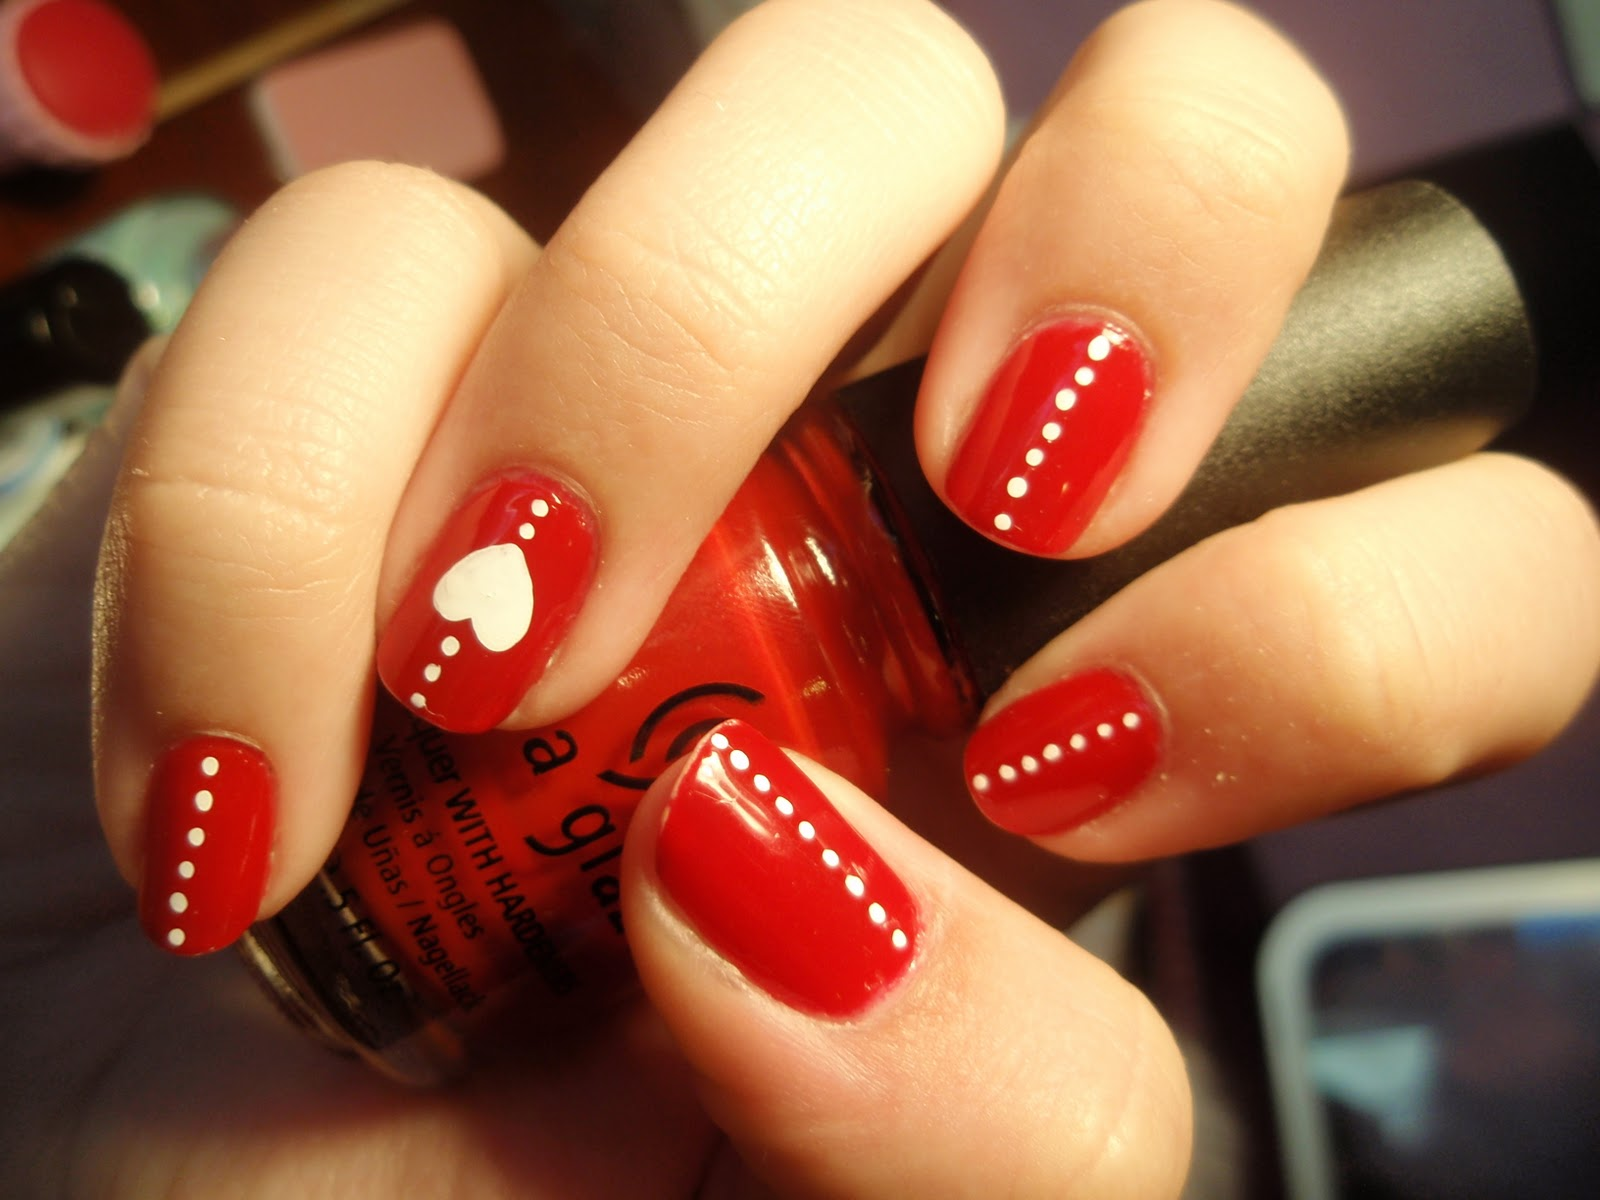 Stylish red nail polish spring 2012